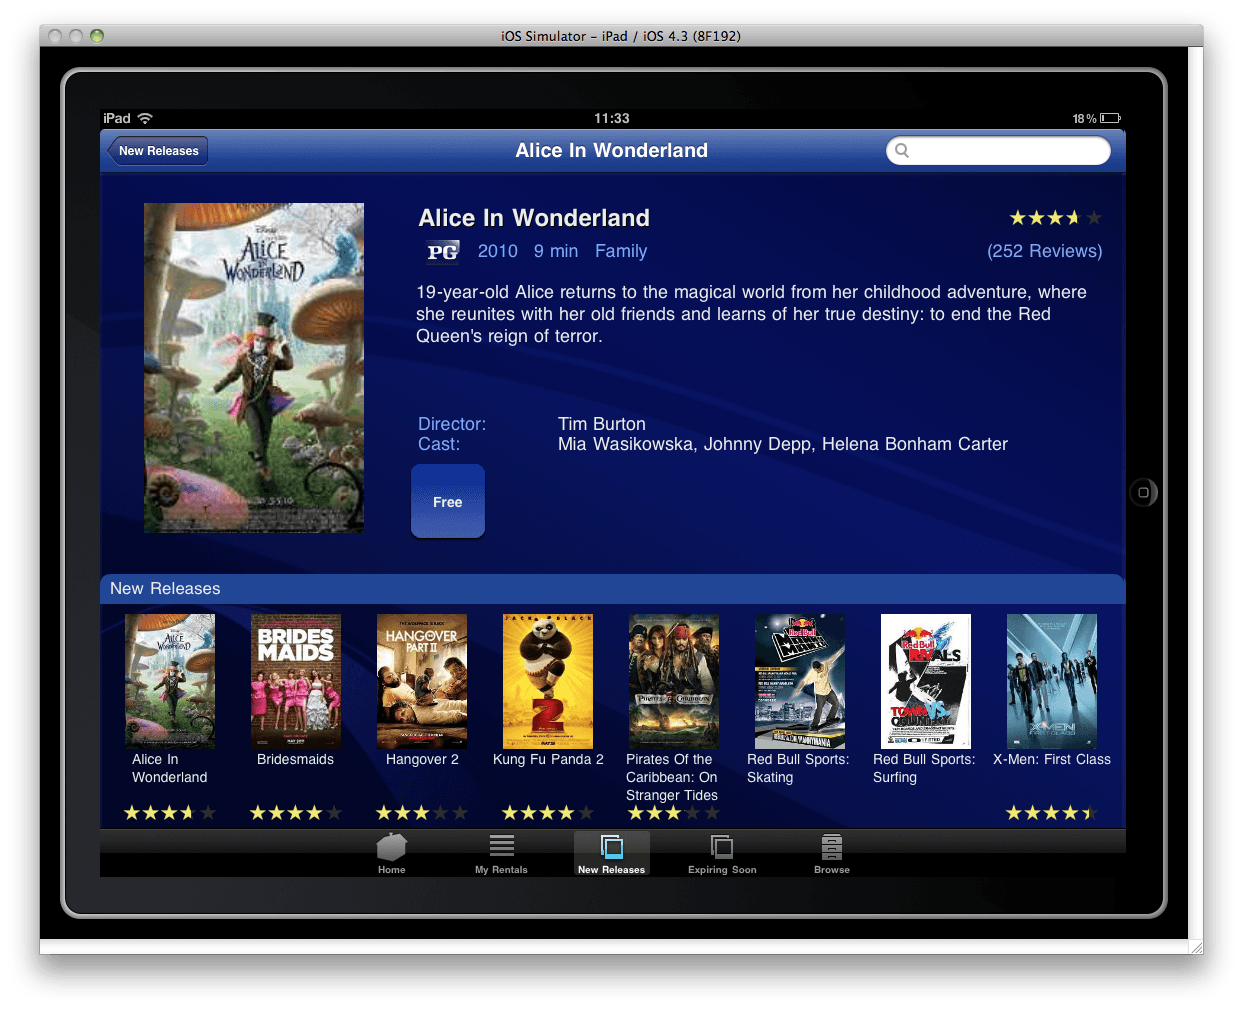 OnDemand for iOS - iPad 0